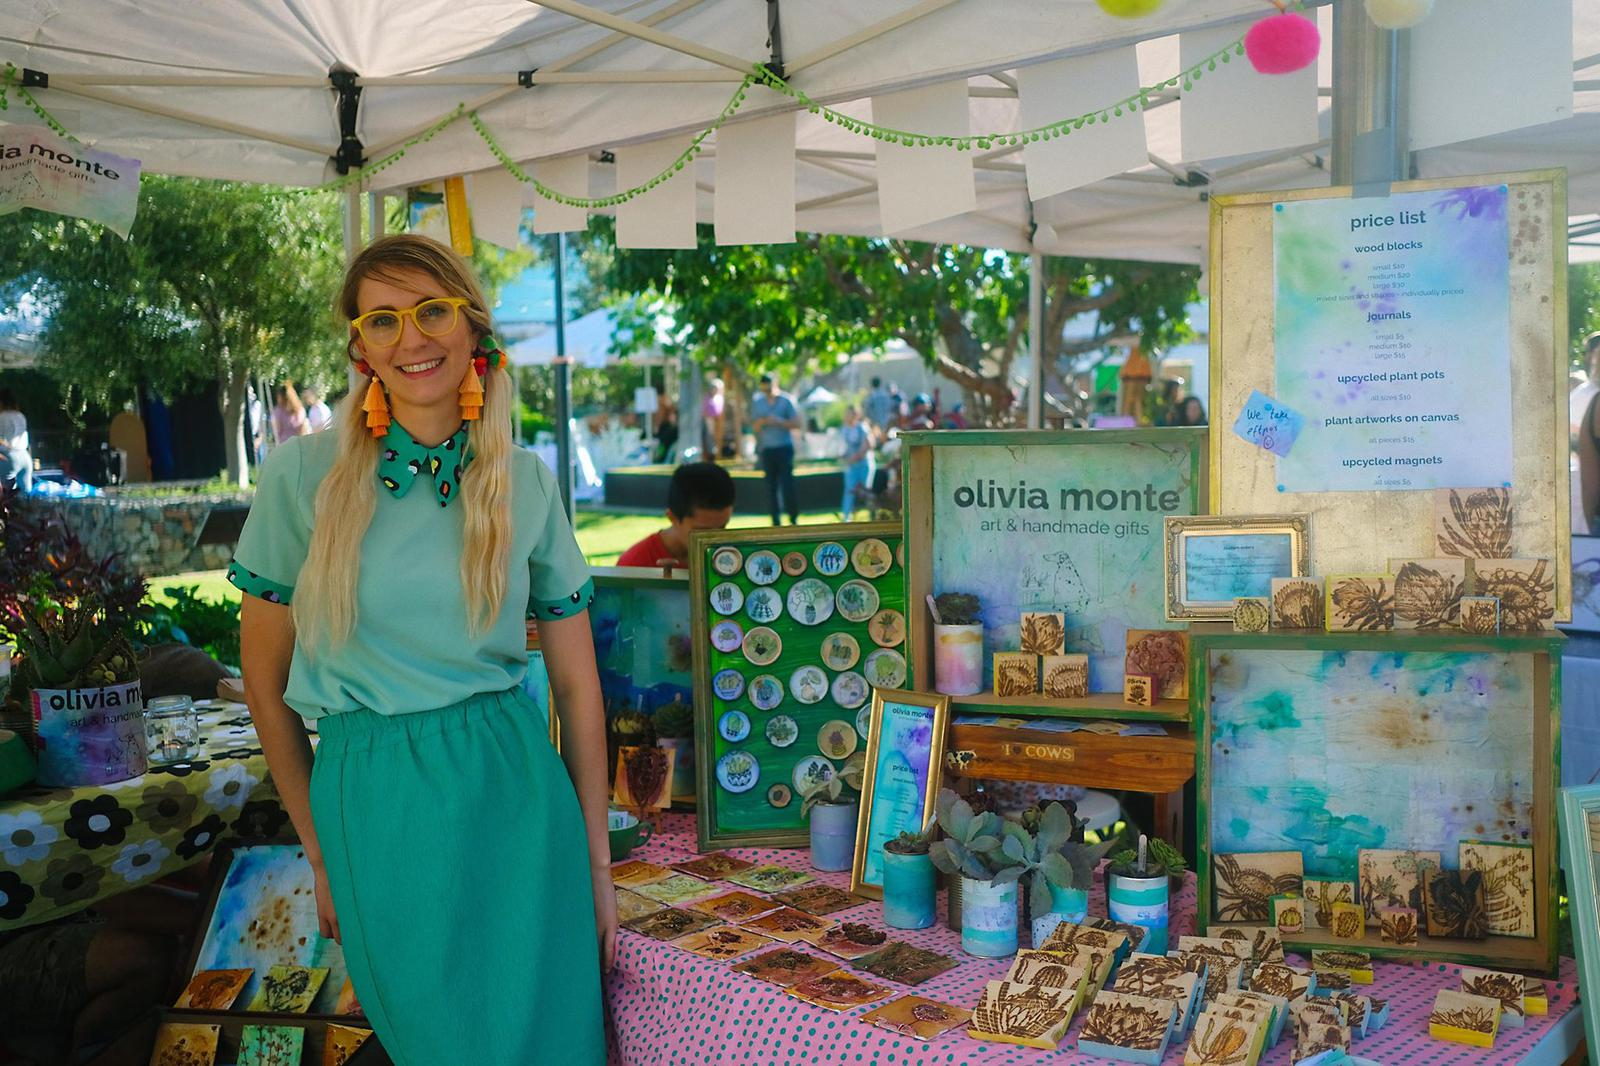 olivia monte artist and stall display